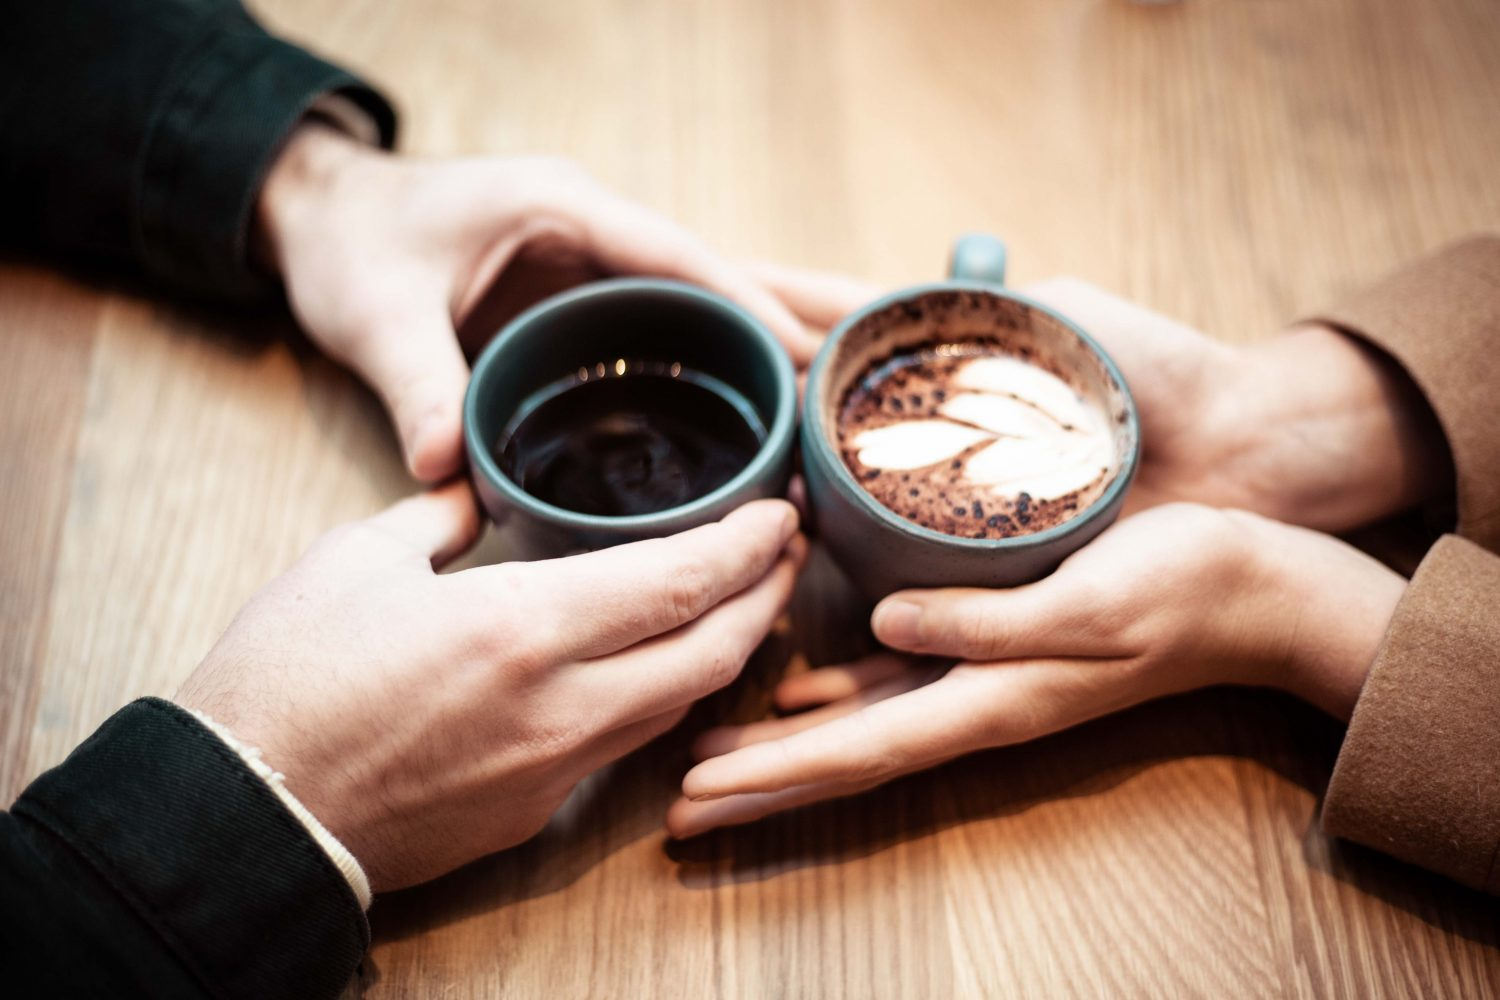 couple holding cups of coffee together on table